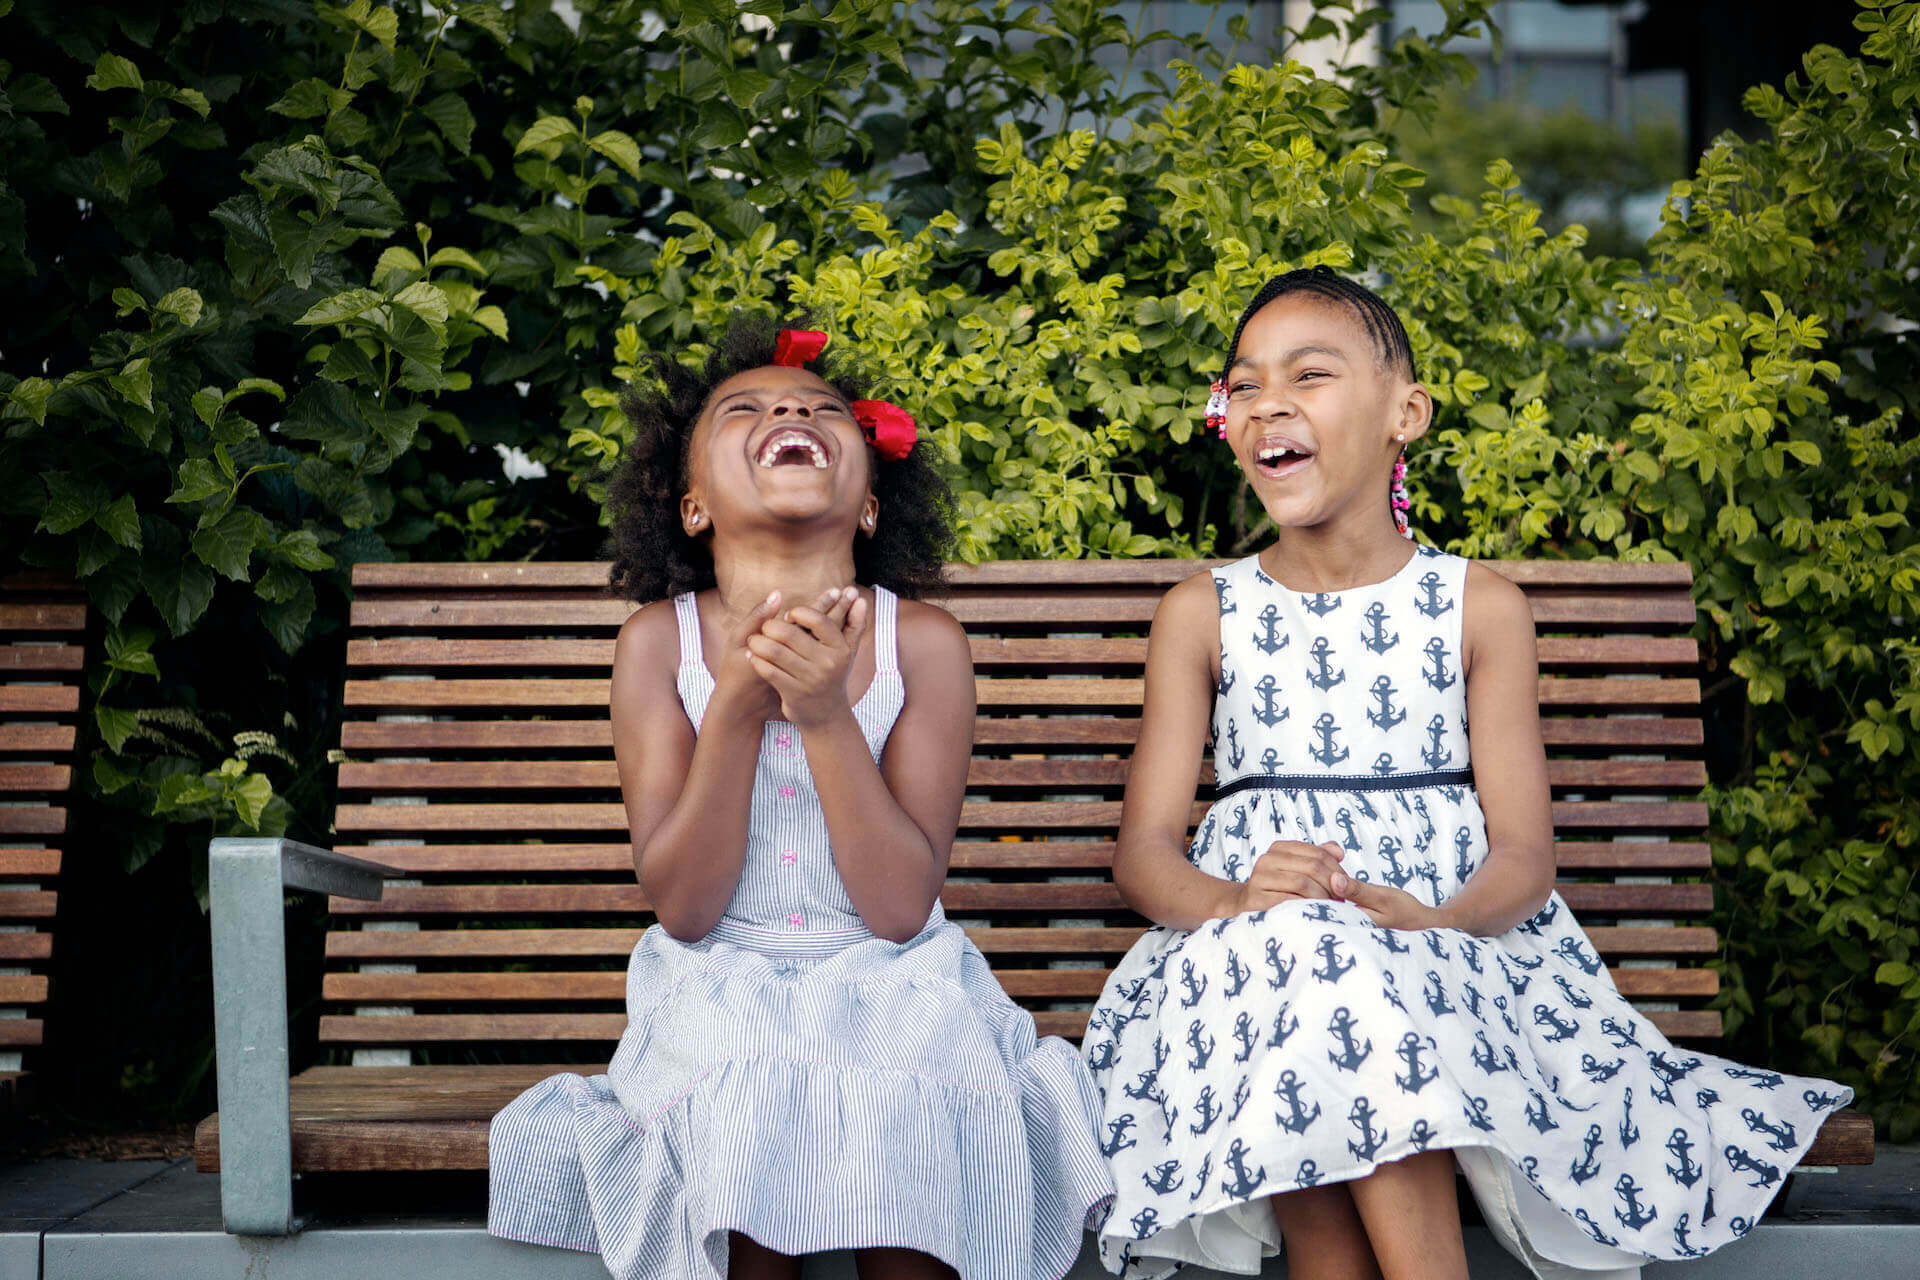 Two girls laughing on a bench